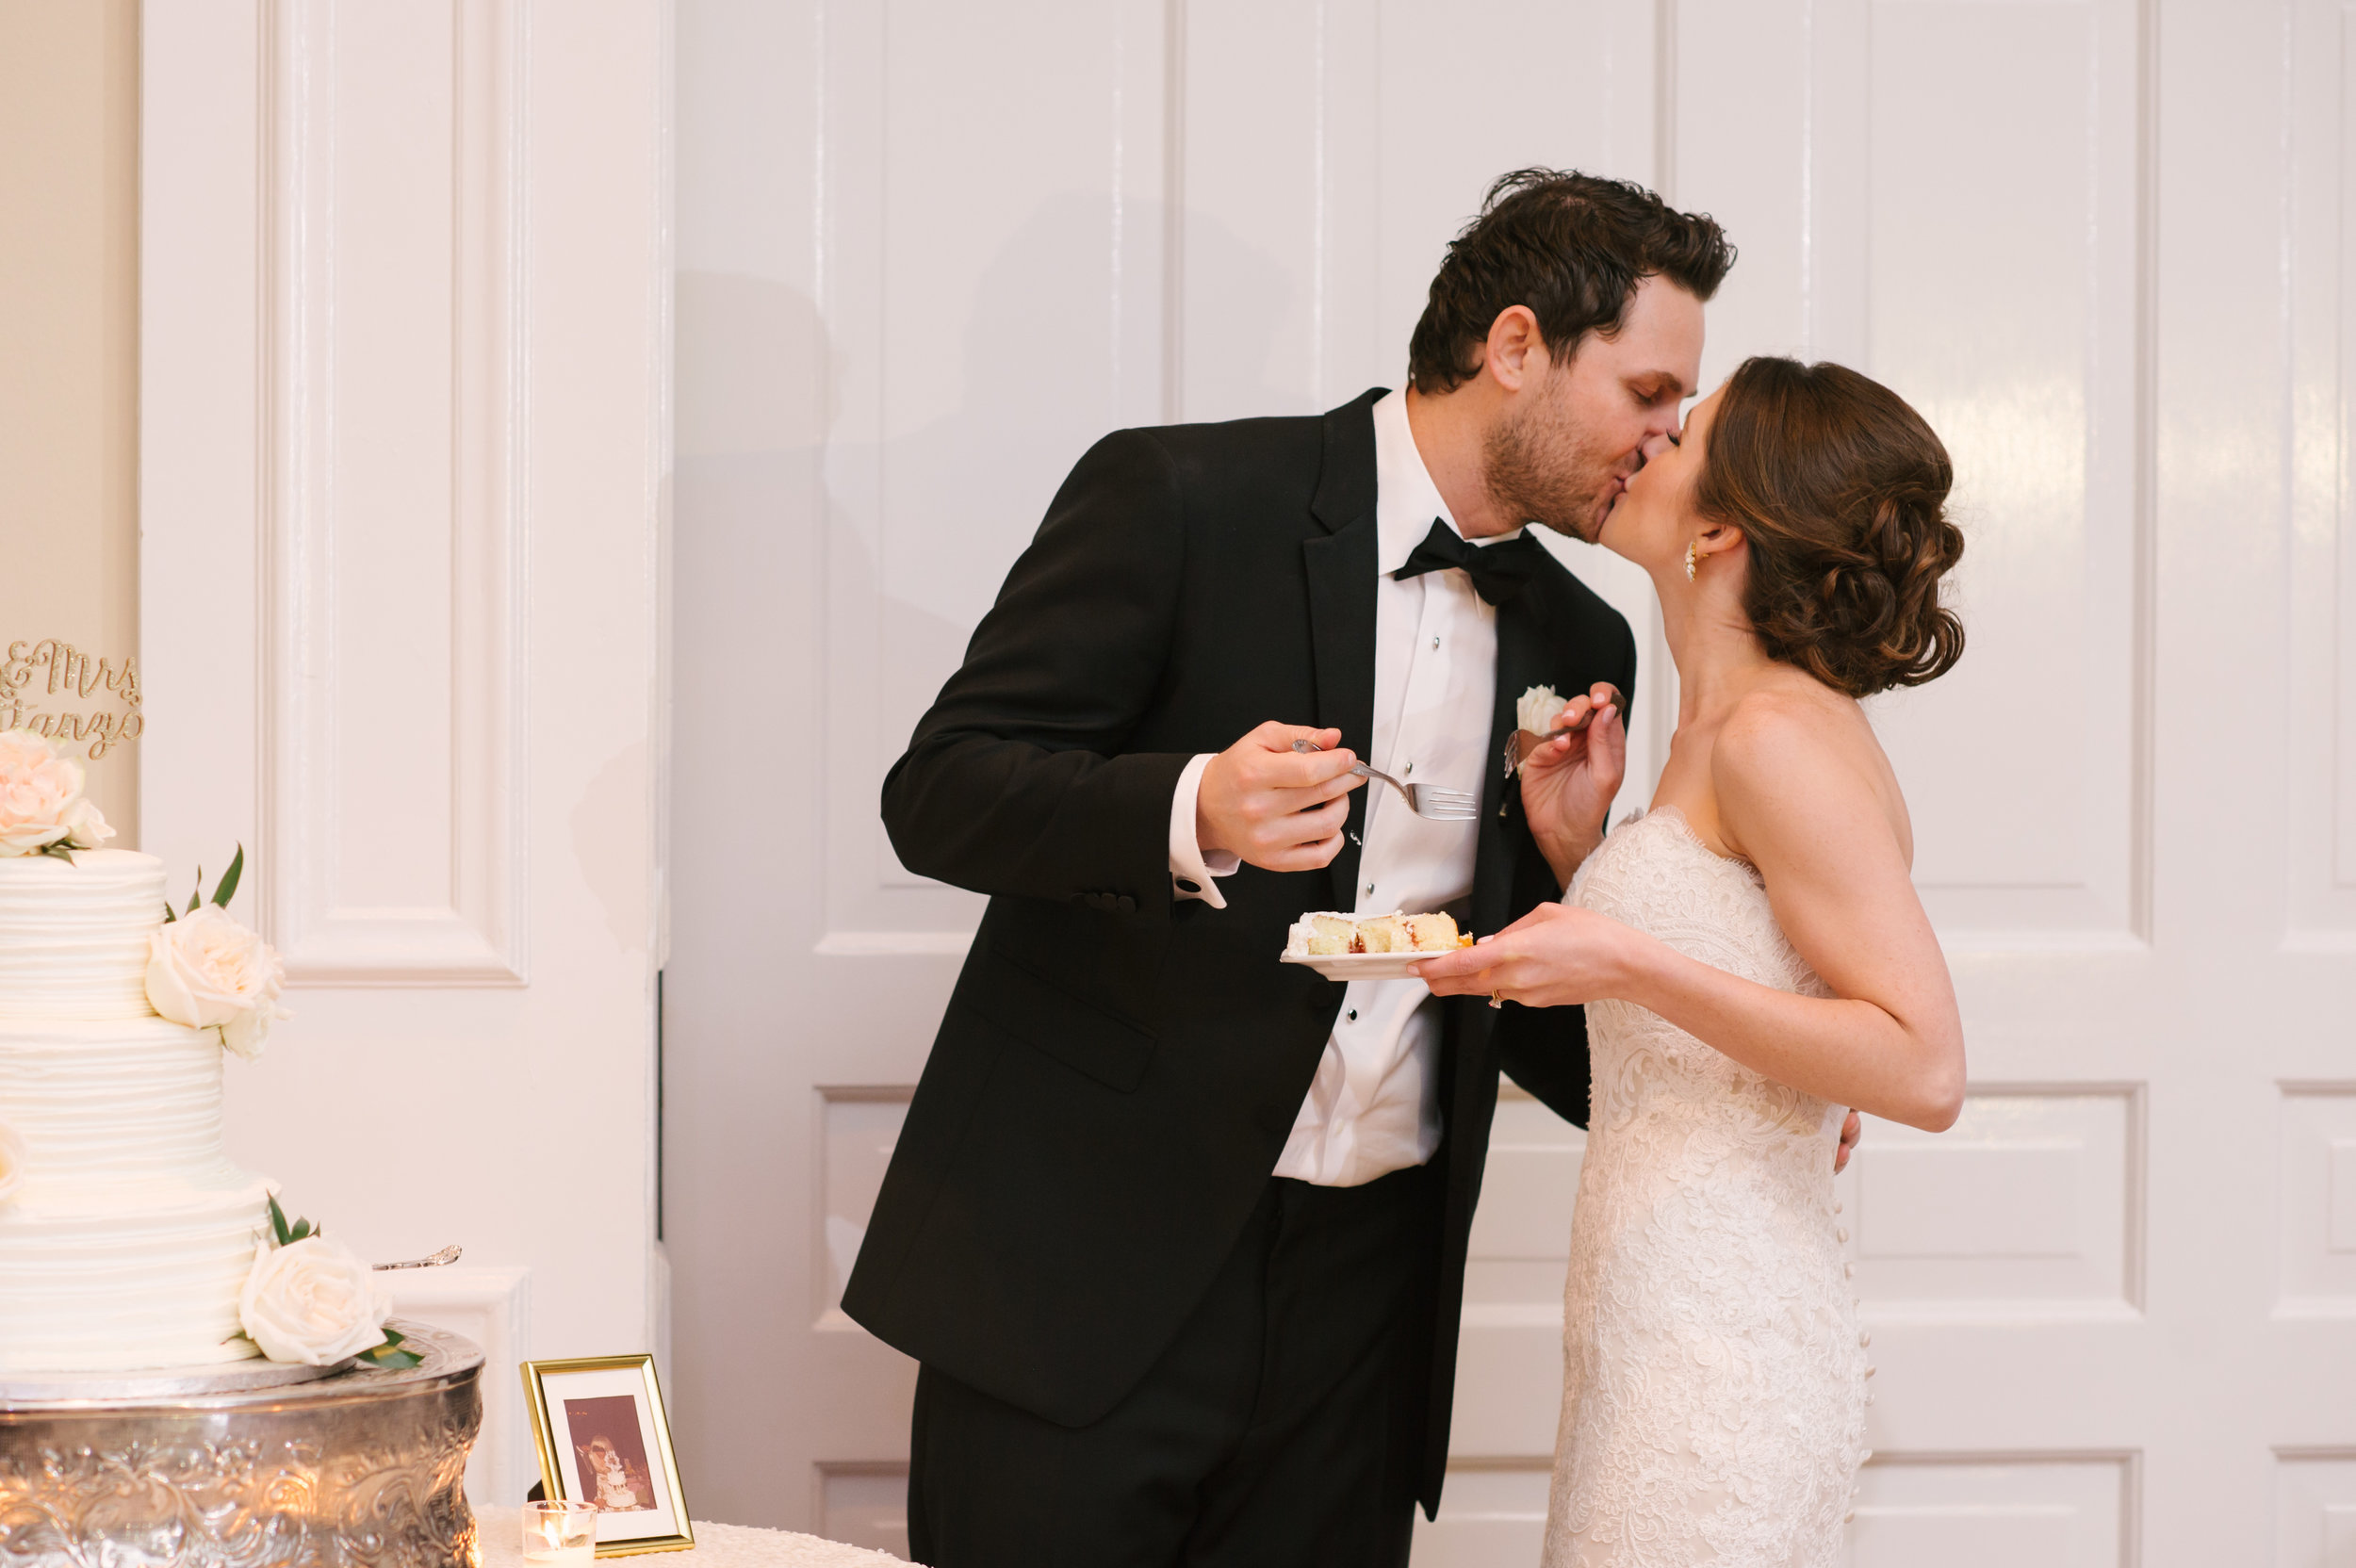 The couple sharing a bite of their beautiful (and delicious!) cake and a kiss!